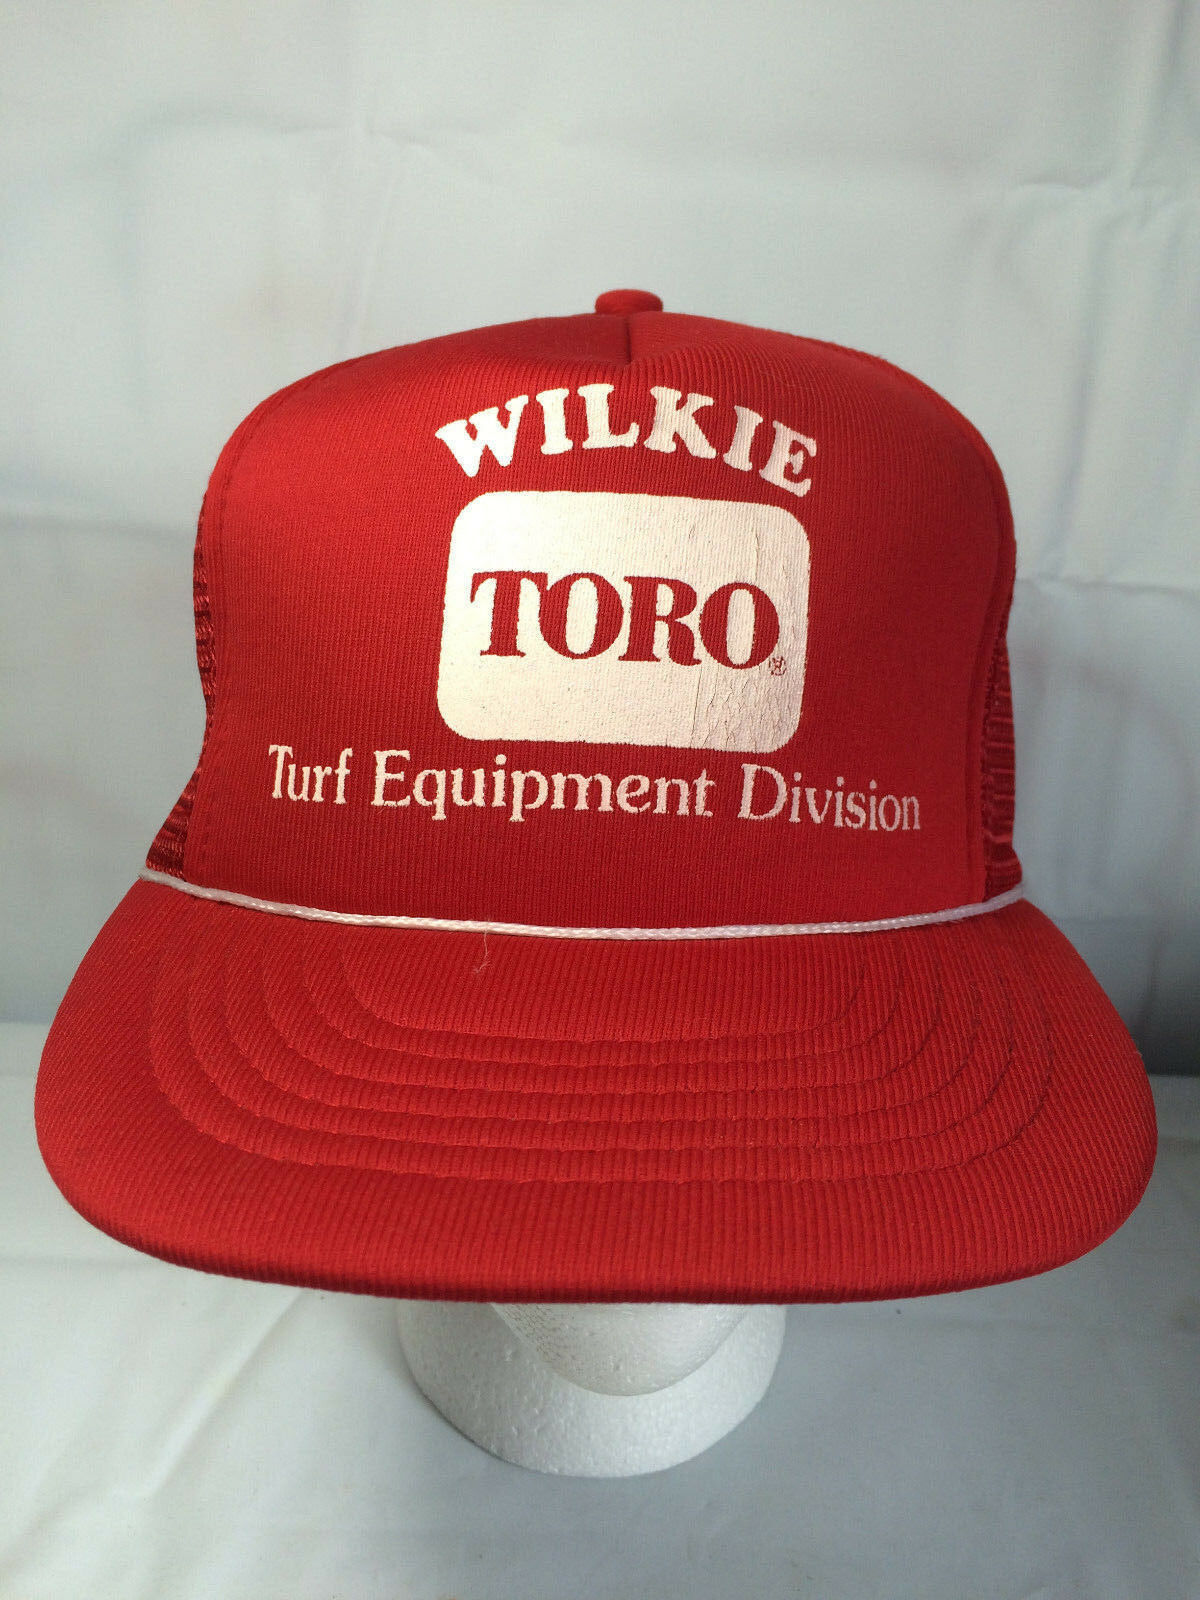 Red WILKIE Baseball TORO Turf Equipment Division Mesh Baseball WILKIE Trucker Hat Cap 0611a8